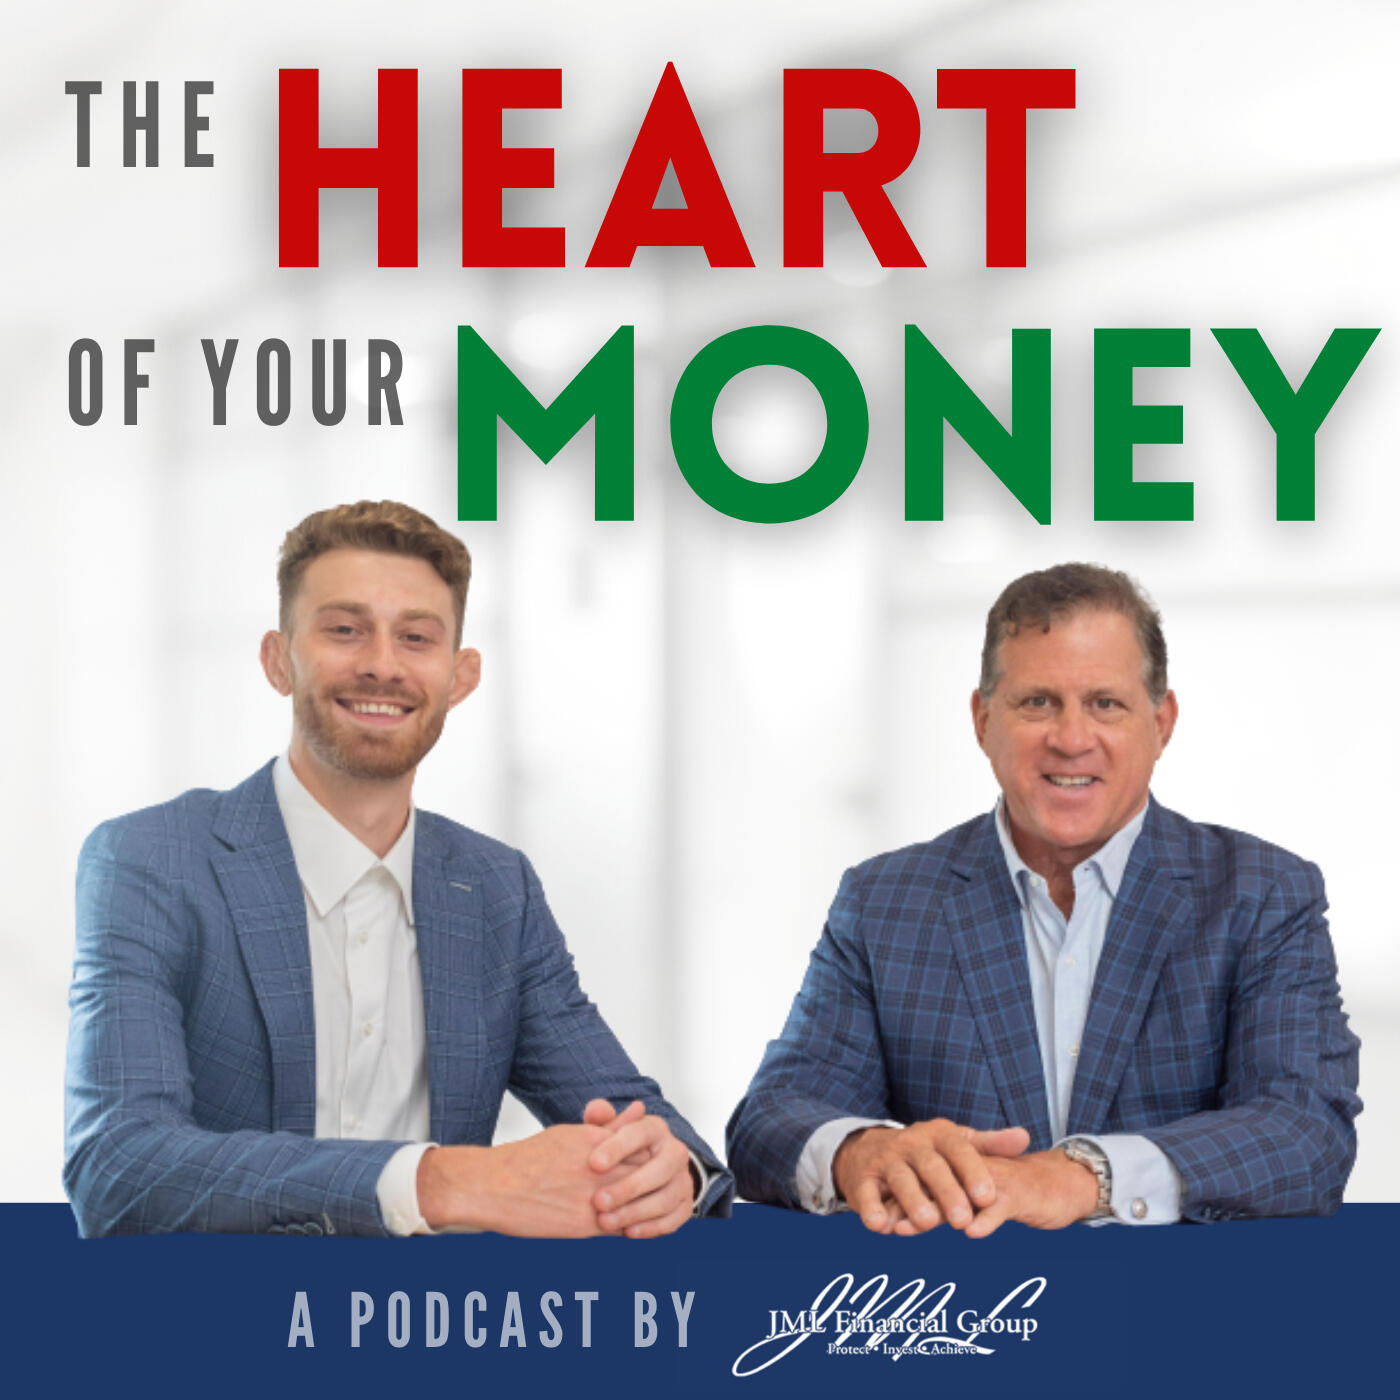 The Heart Of Your Money: Inspiration For Financial Wellness